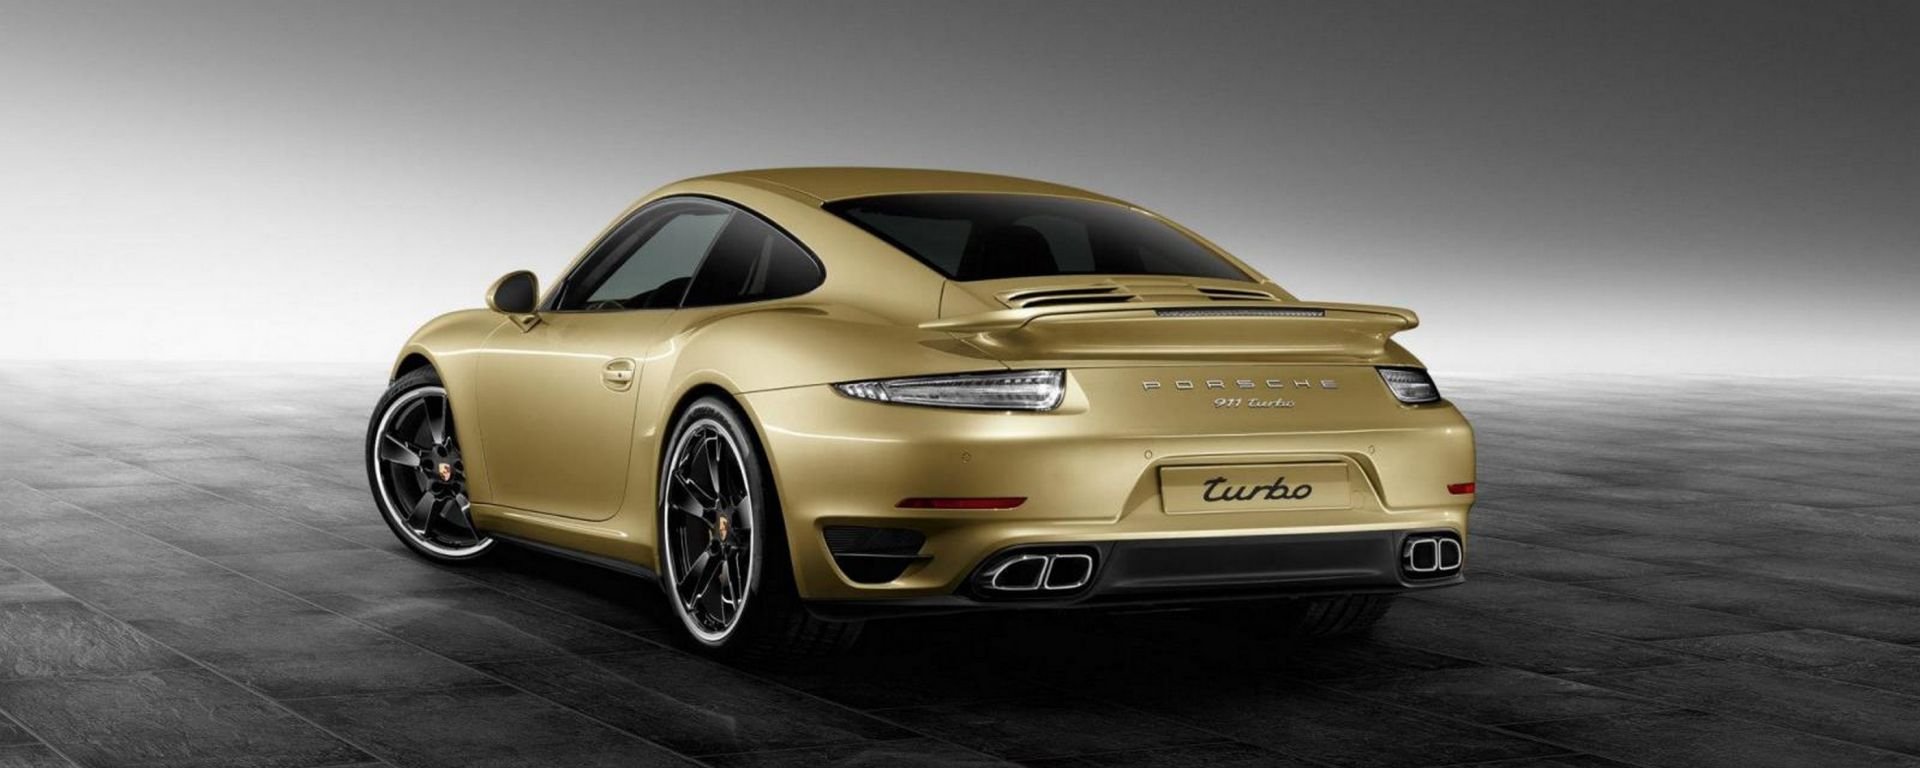 Porsche 911 Turbo Exclusive